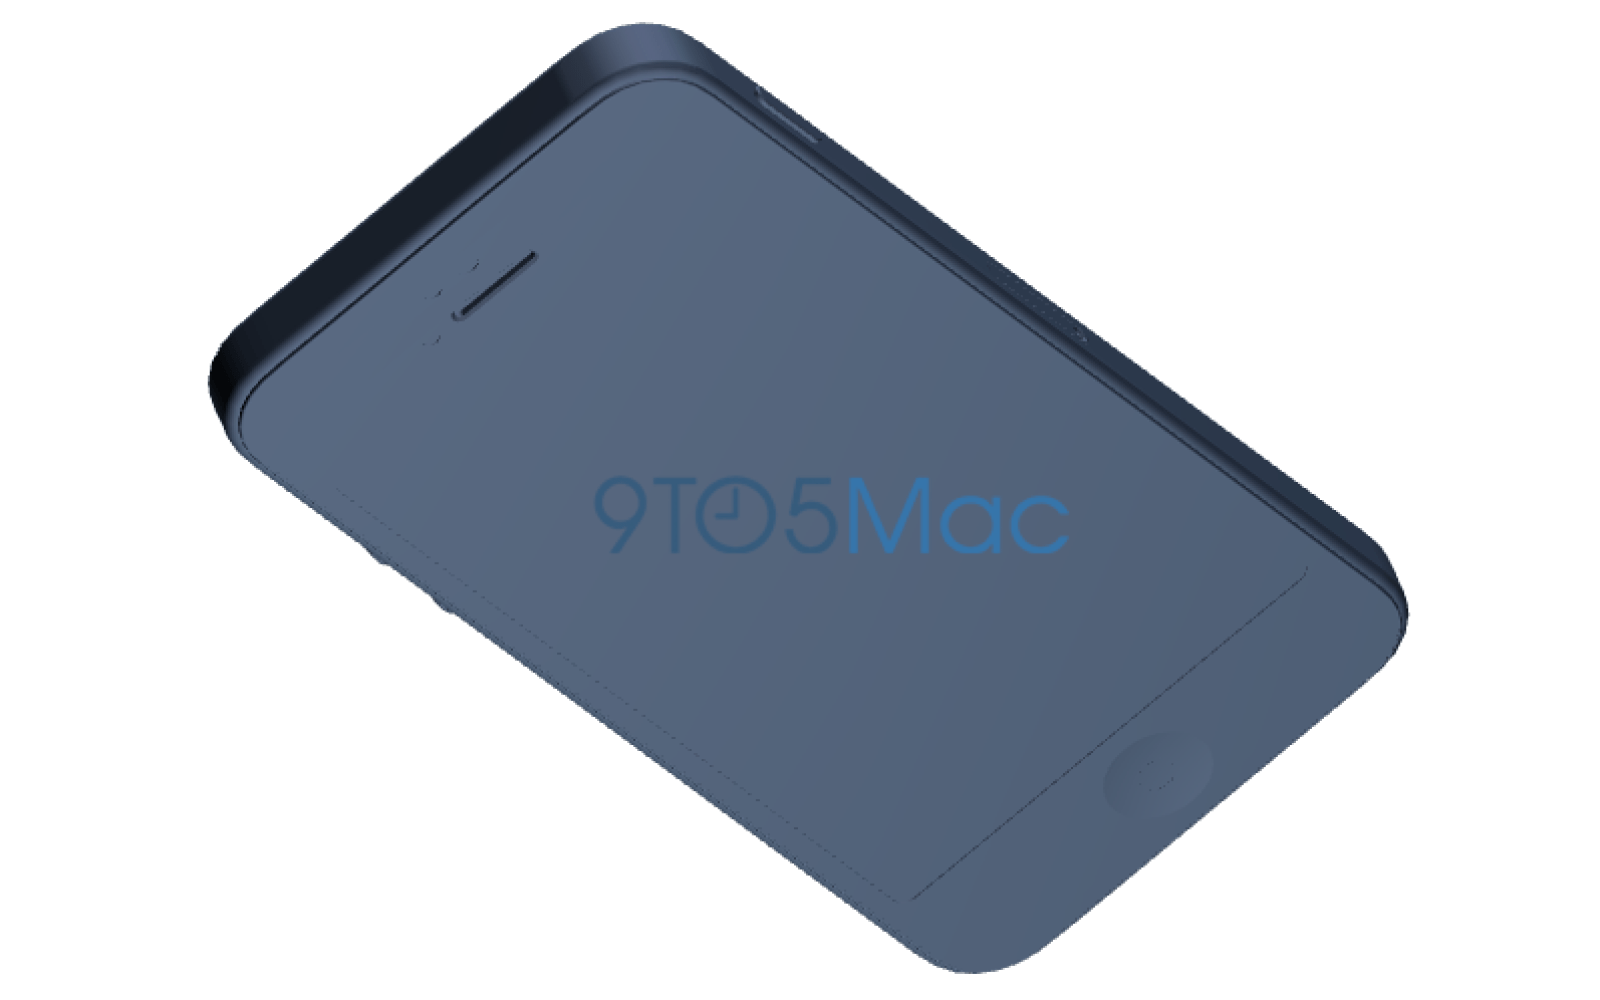 iPhone 5se drawings: nearly identical to 5s with slightly curved edges